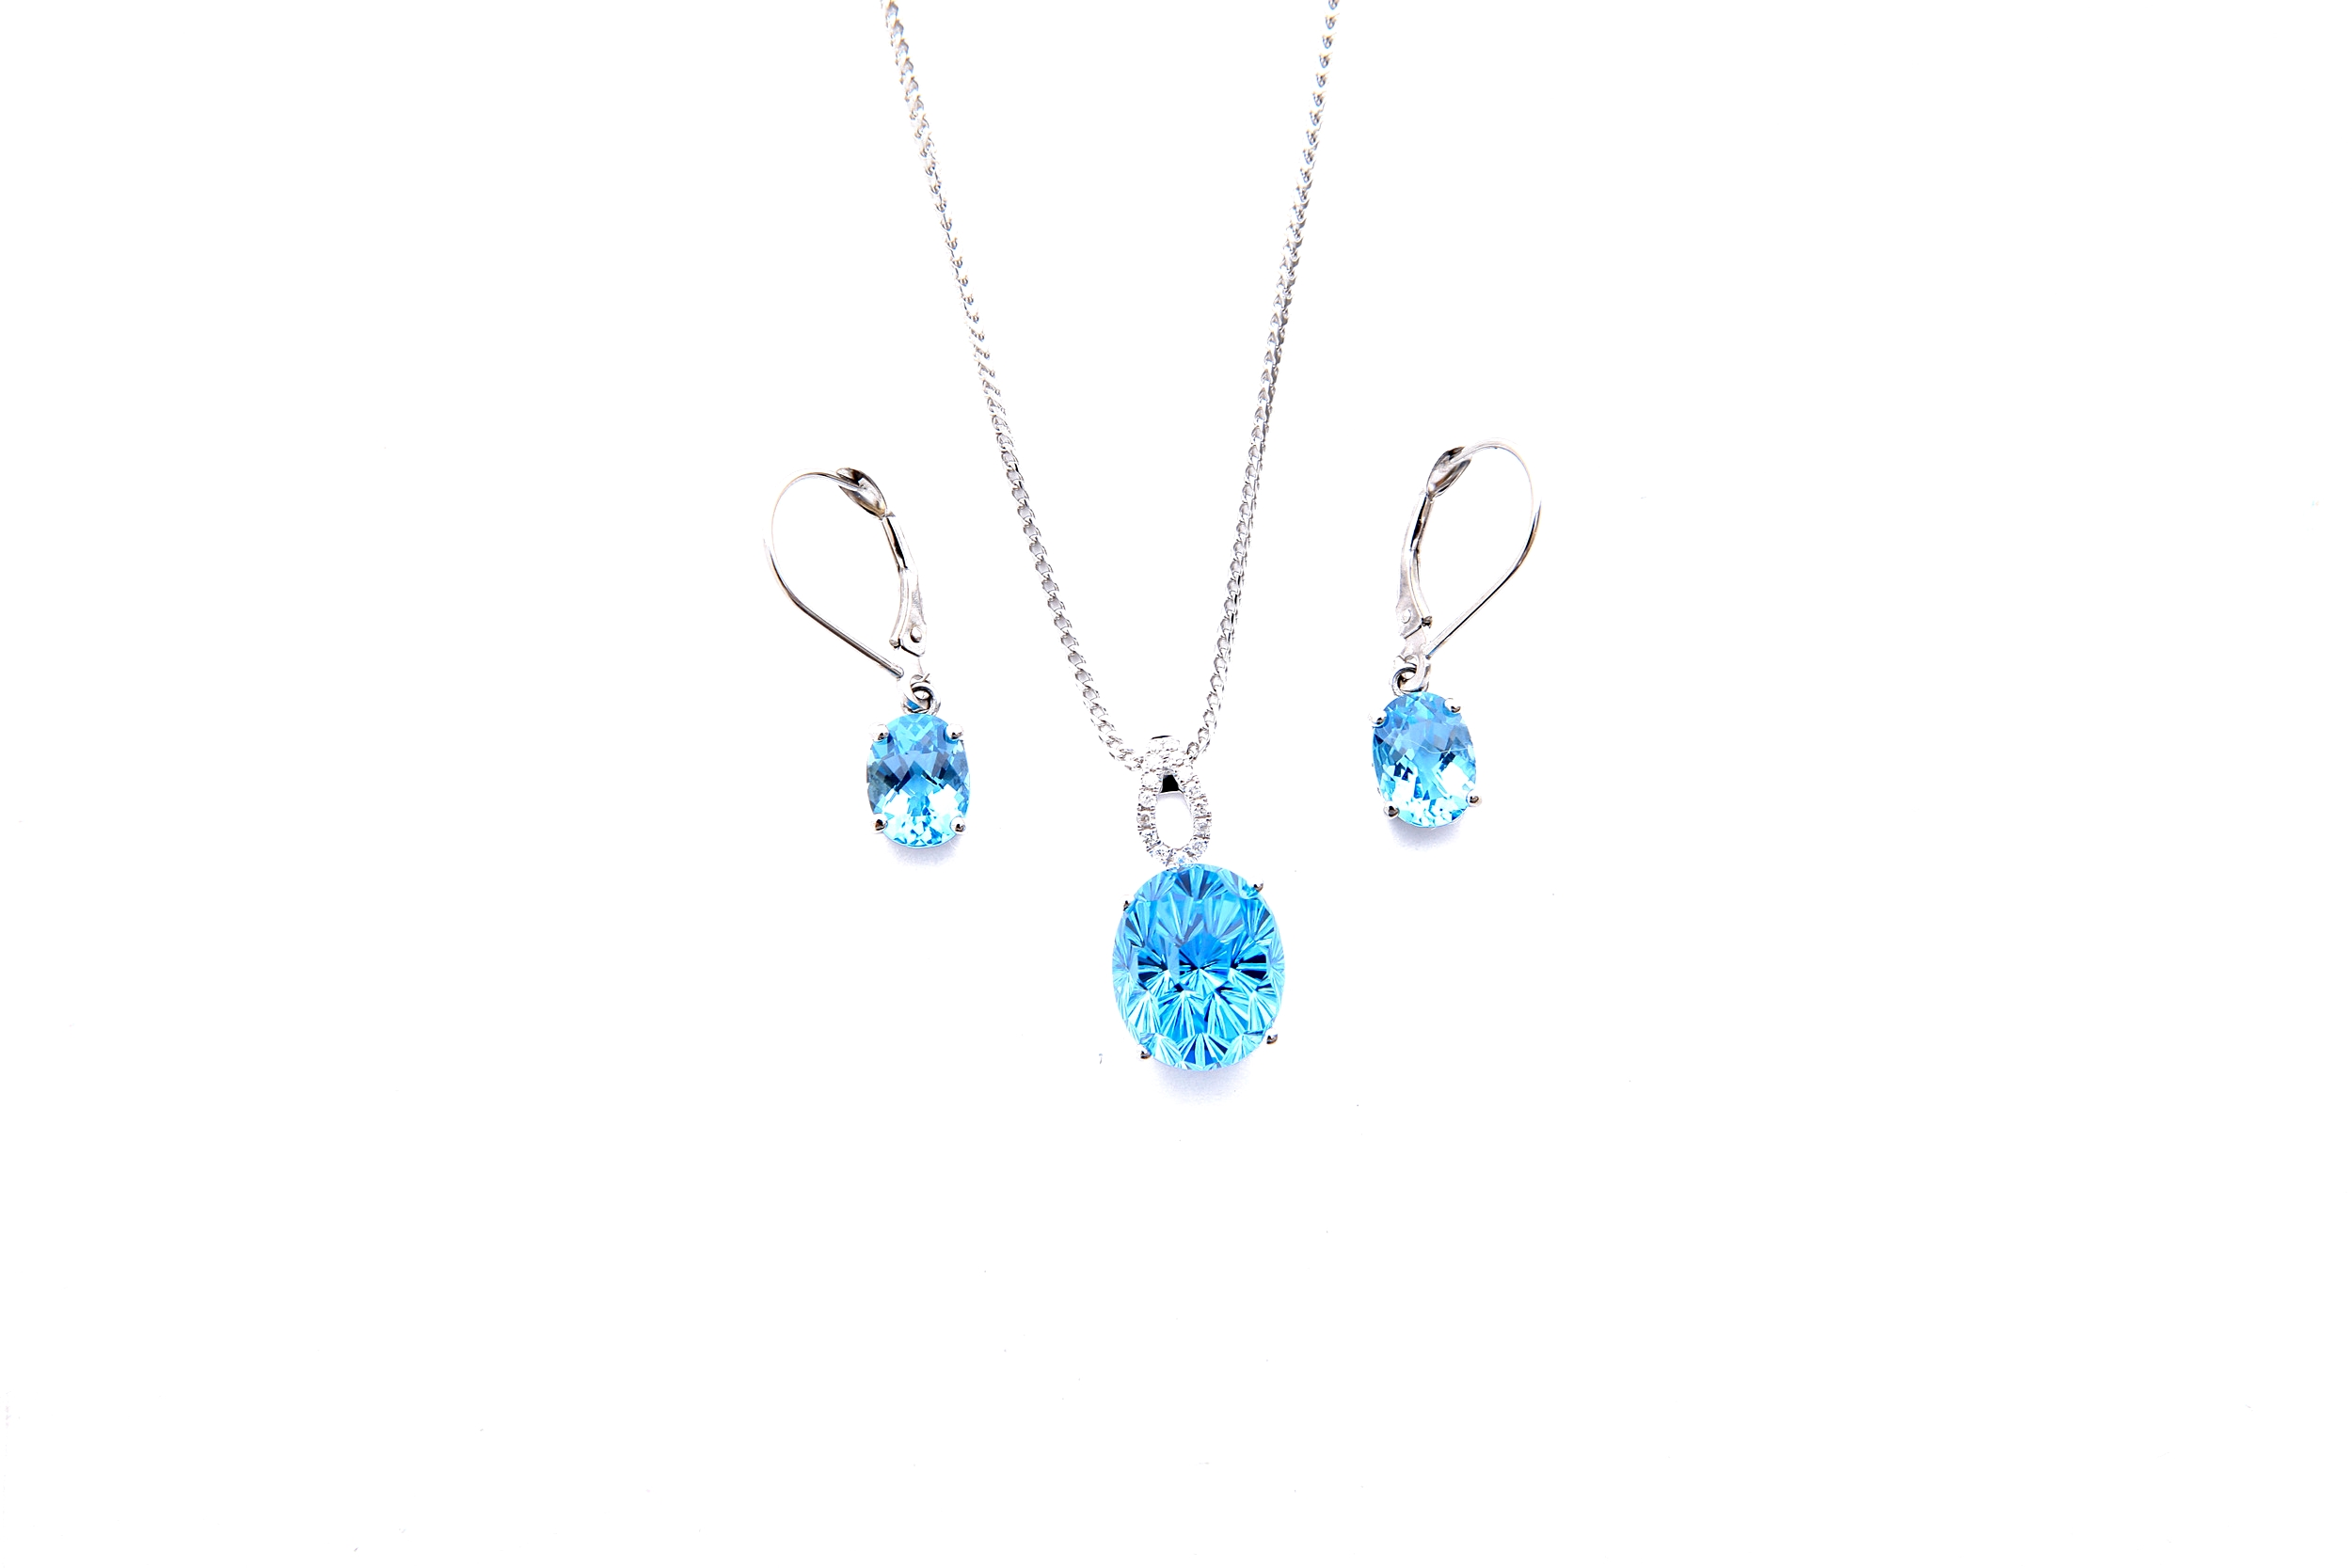 Blue Necklace and earrings.jpg